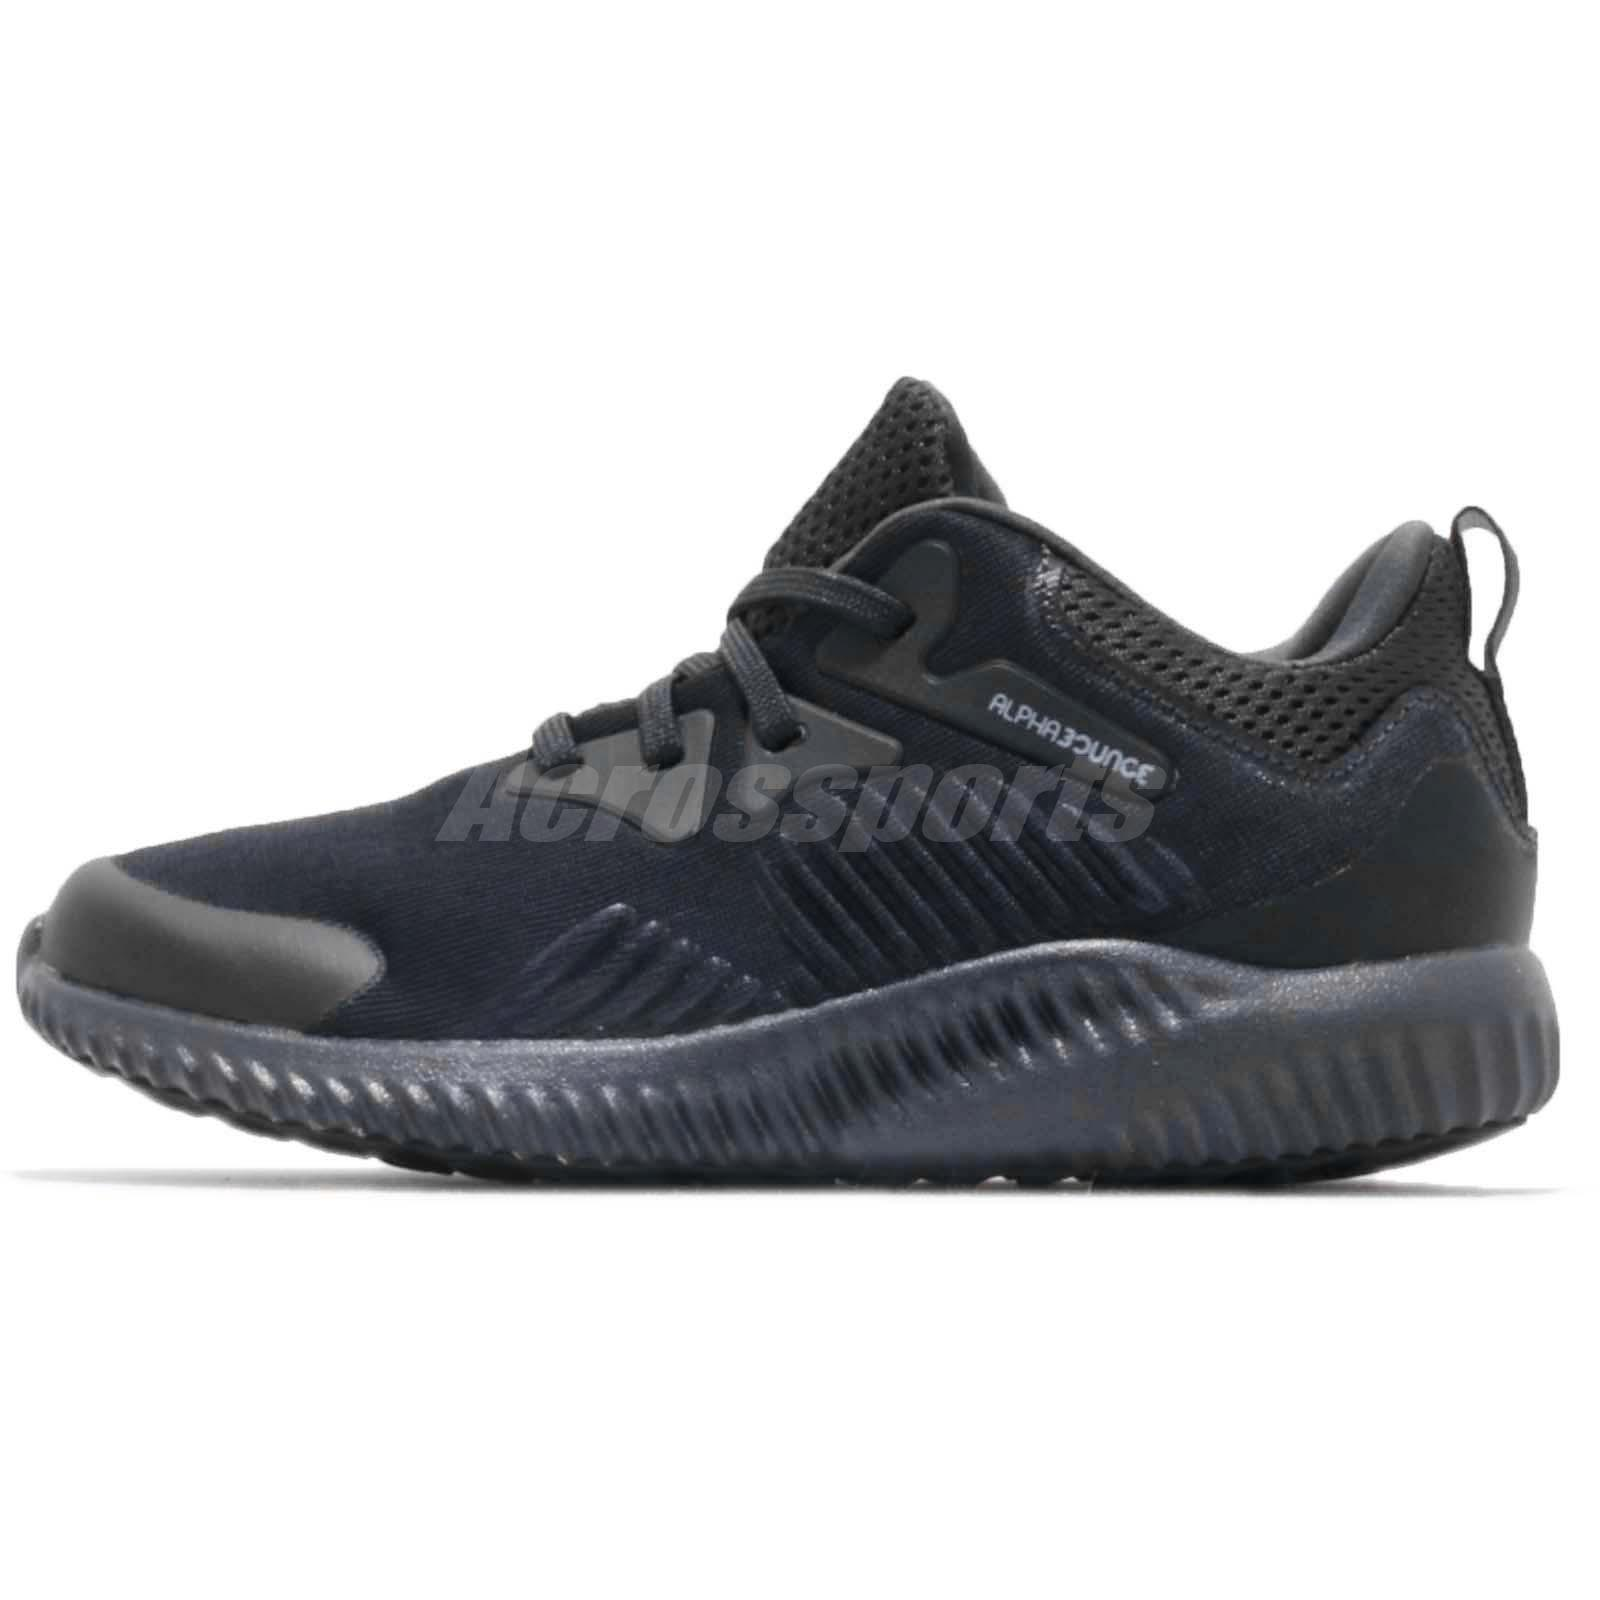 adidas Alphabounce Beyond C Carbon Grey Black Kid Preschool Shoes Sneaker  B42285